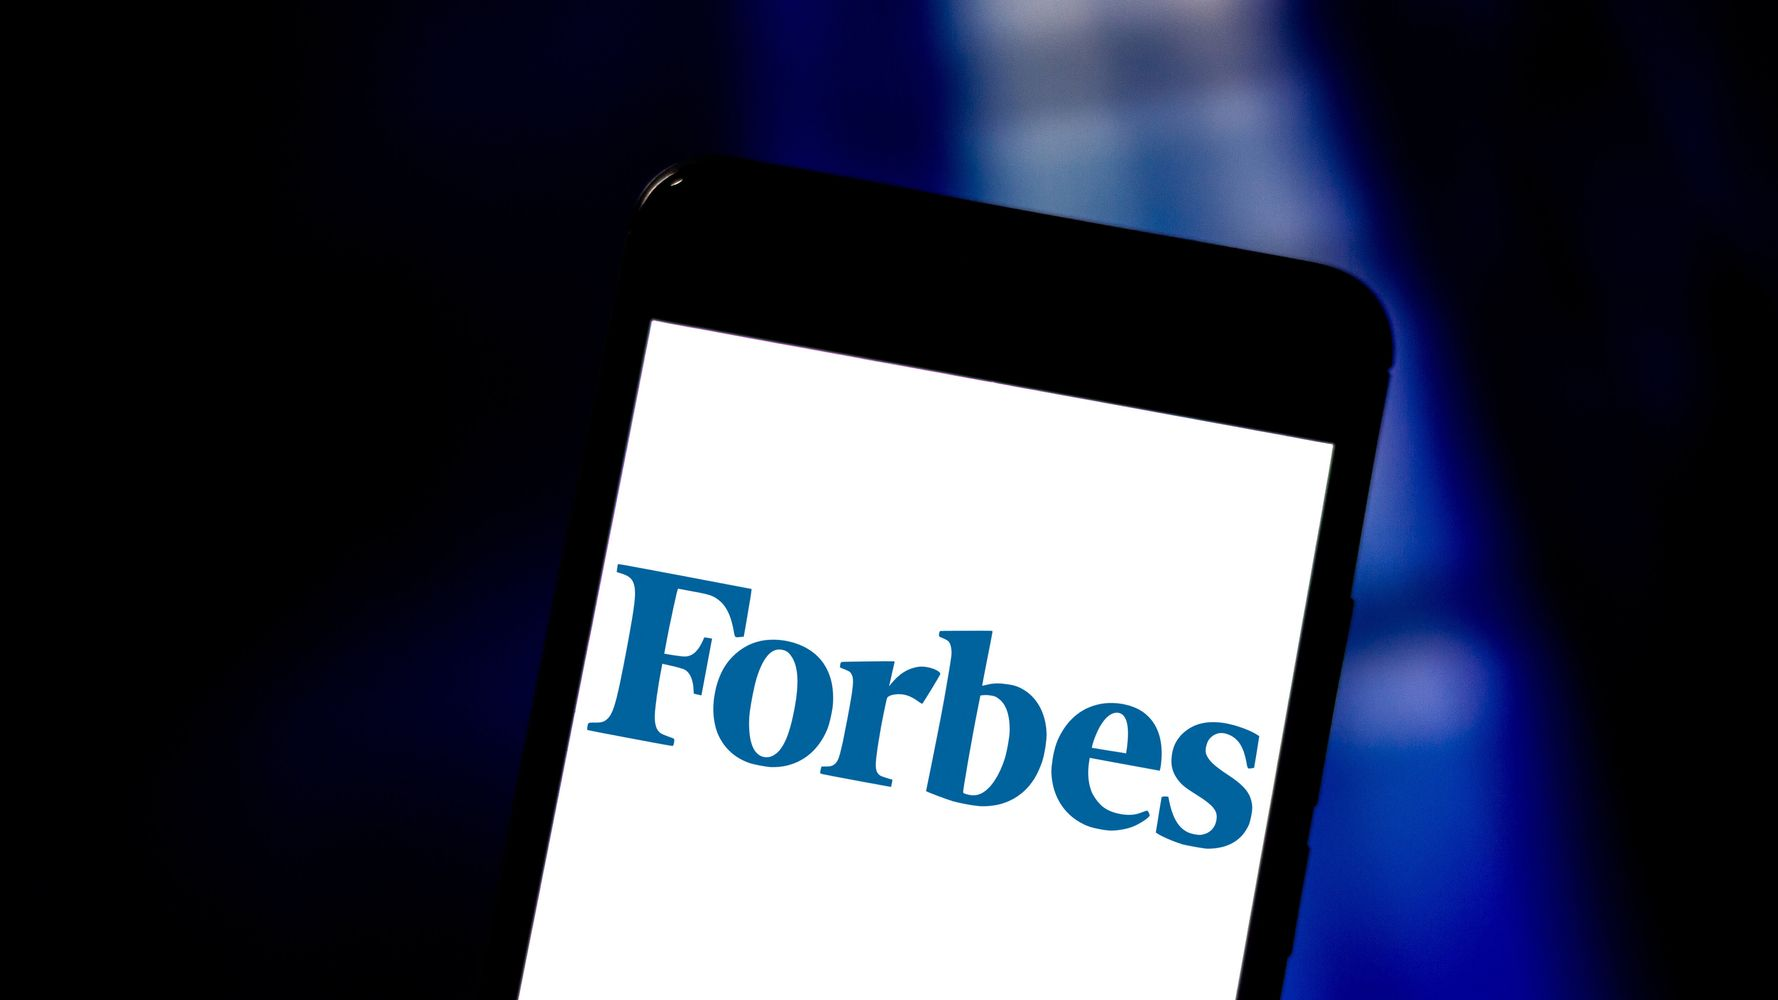 Forbes Editor Offers Non-Apology For Leaving Women Off Innovators List